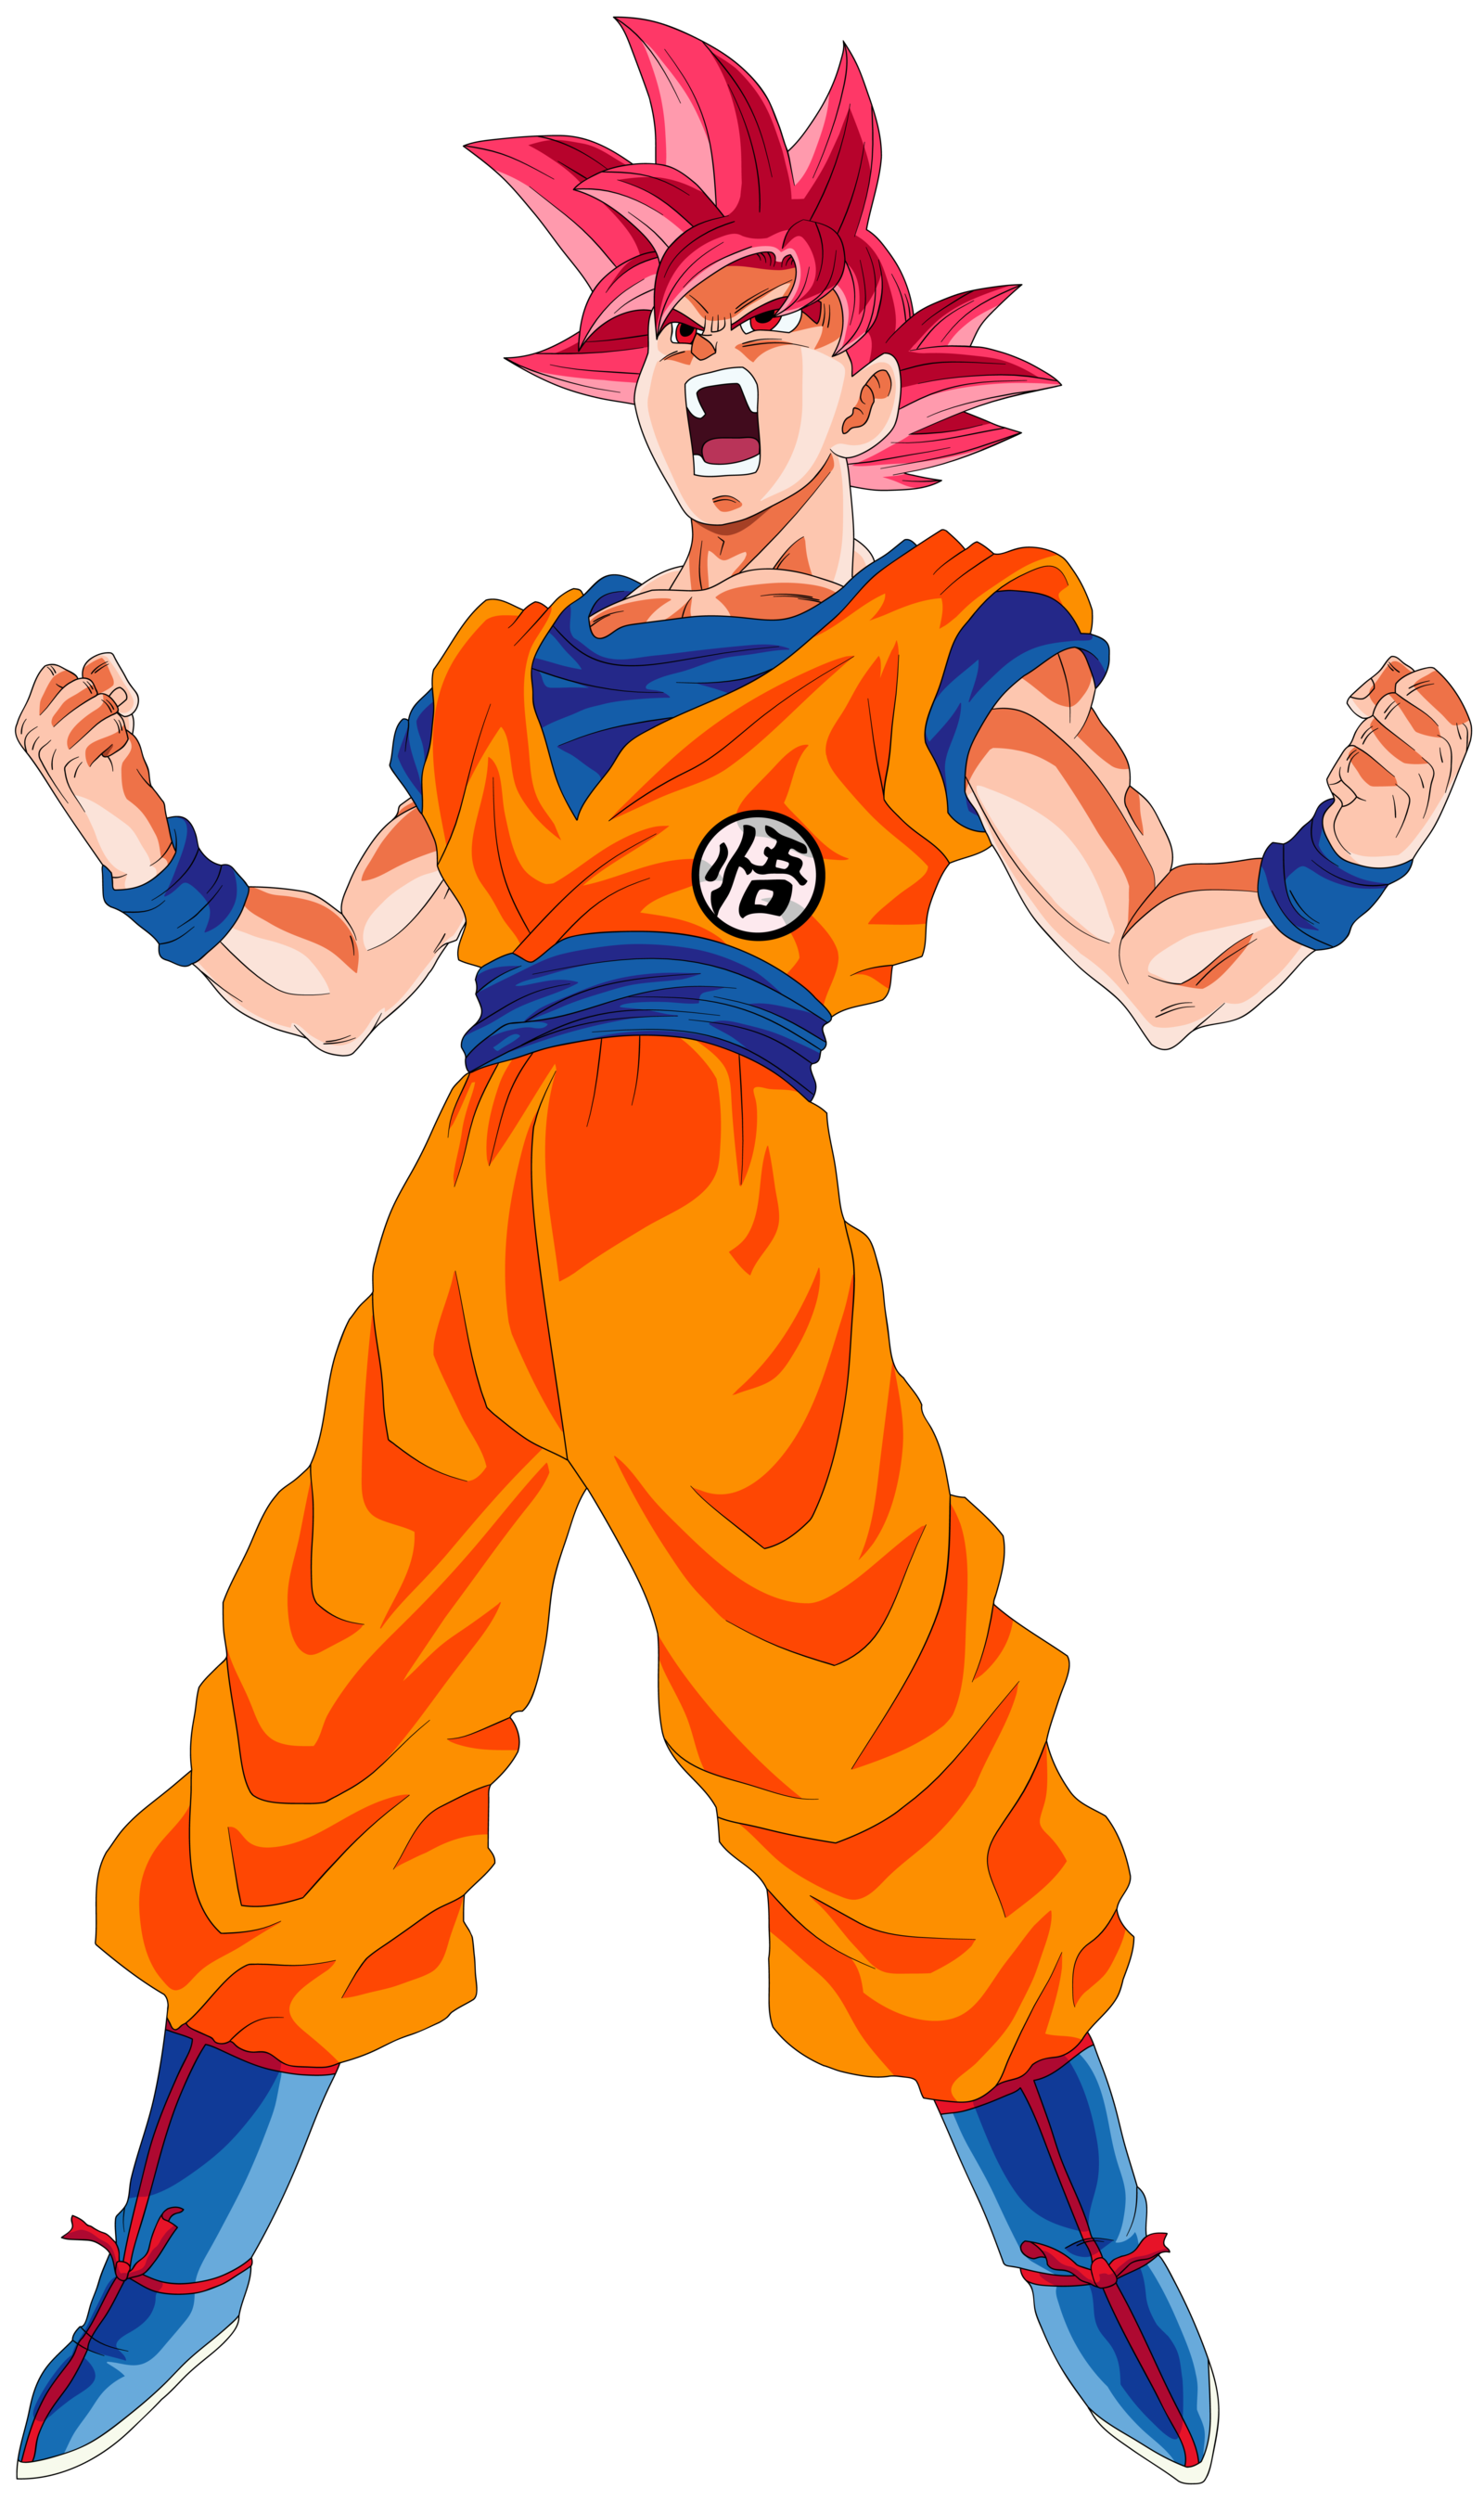 Super saiyan blue goku png. Image god power up